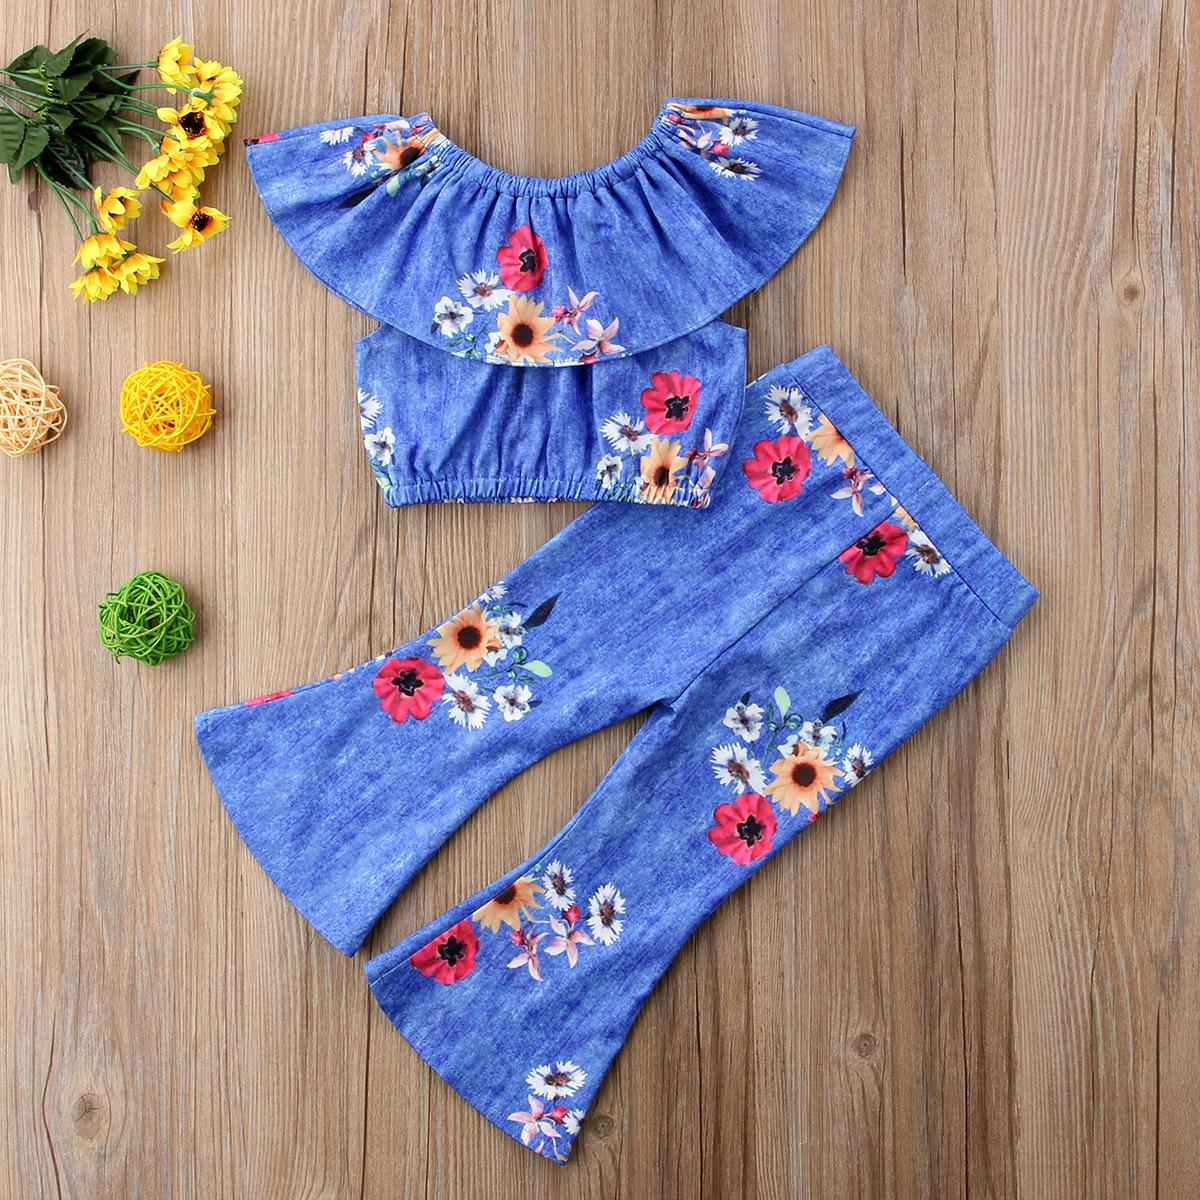 96c1309f96ec Girls  Sunflower Cloth Set Girls  Short Top And Flare Pants Two ...